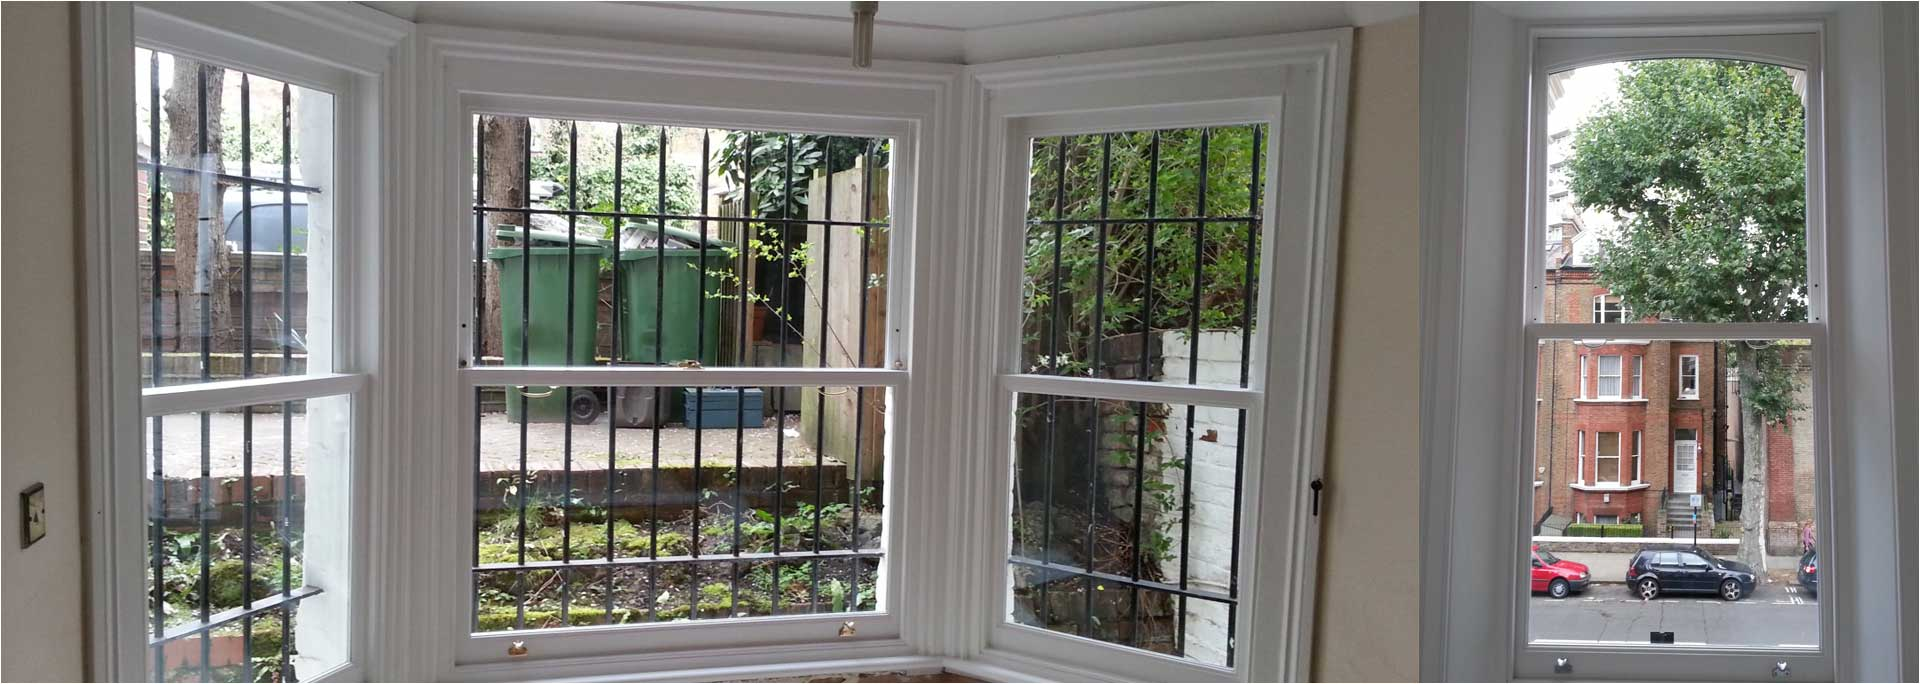 New Double Glazed Window